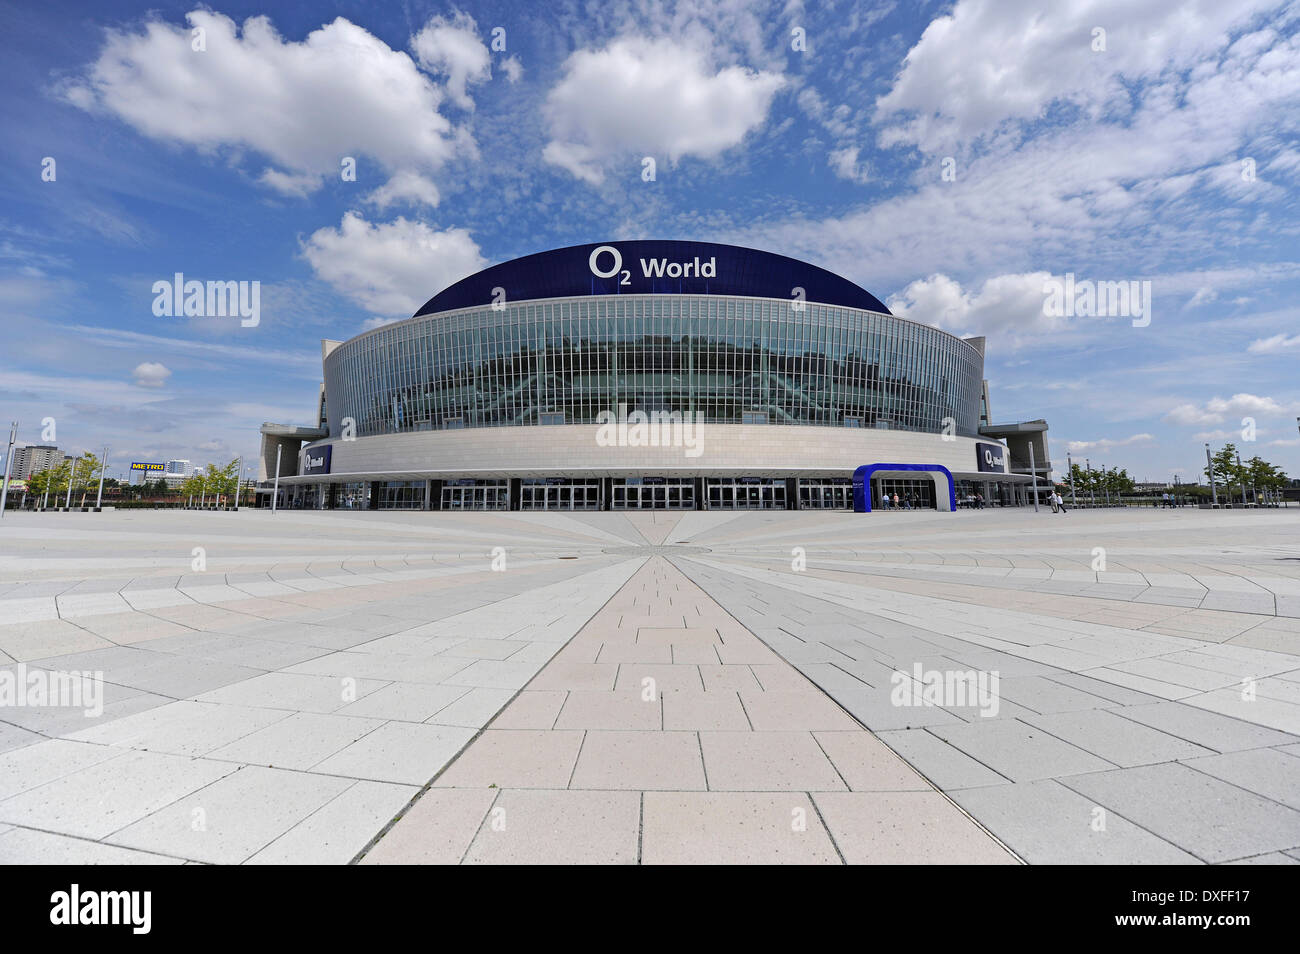 O2 World, Multi-purpose hall for up to 17000 spectators, Berlin, Germany - Stock Image